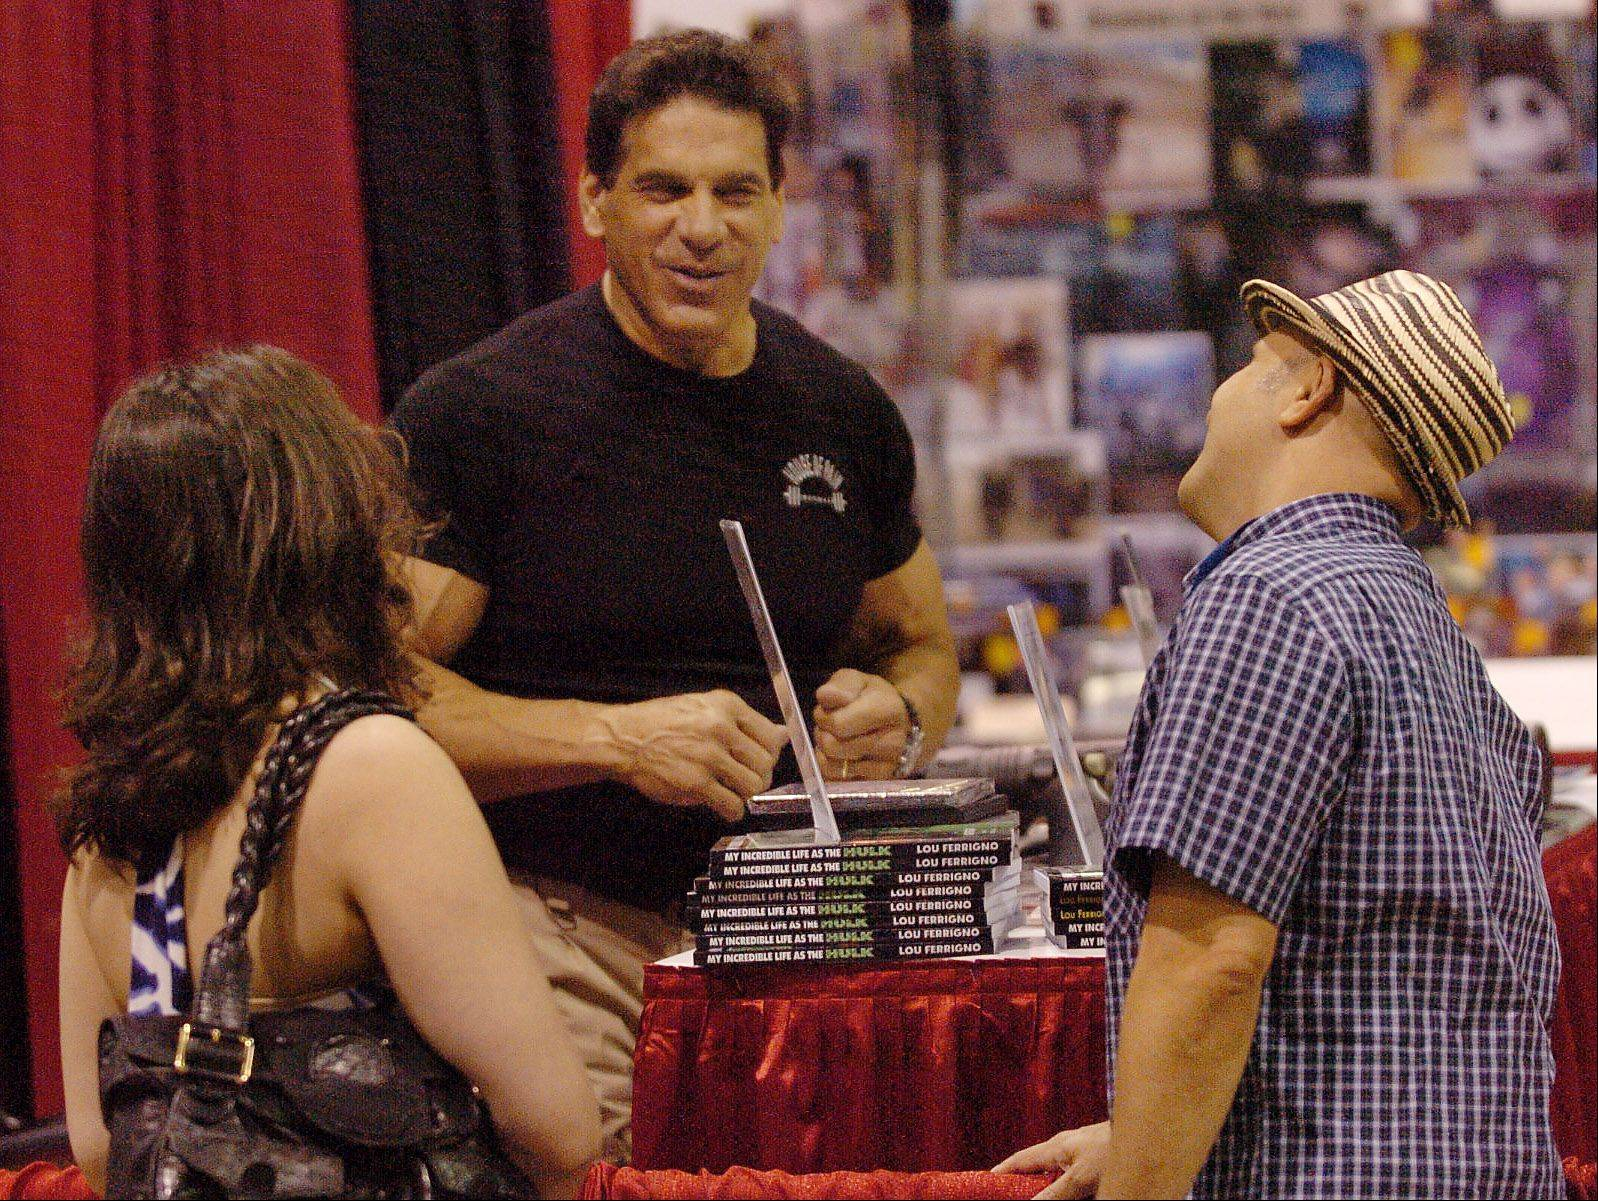 Lou Ferrigno visits with Paris Themmen, right, who played Mike TeeVee in Willie Wonka, and Nikki Grillos, as he prepares to sign his book at the Wizard World Chicago Comic Con.